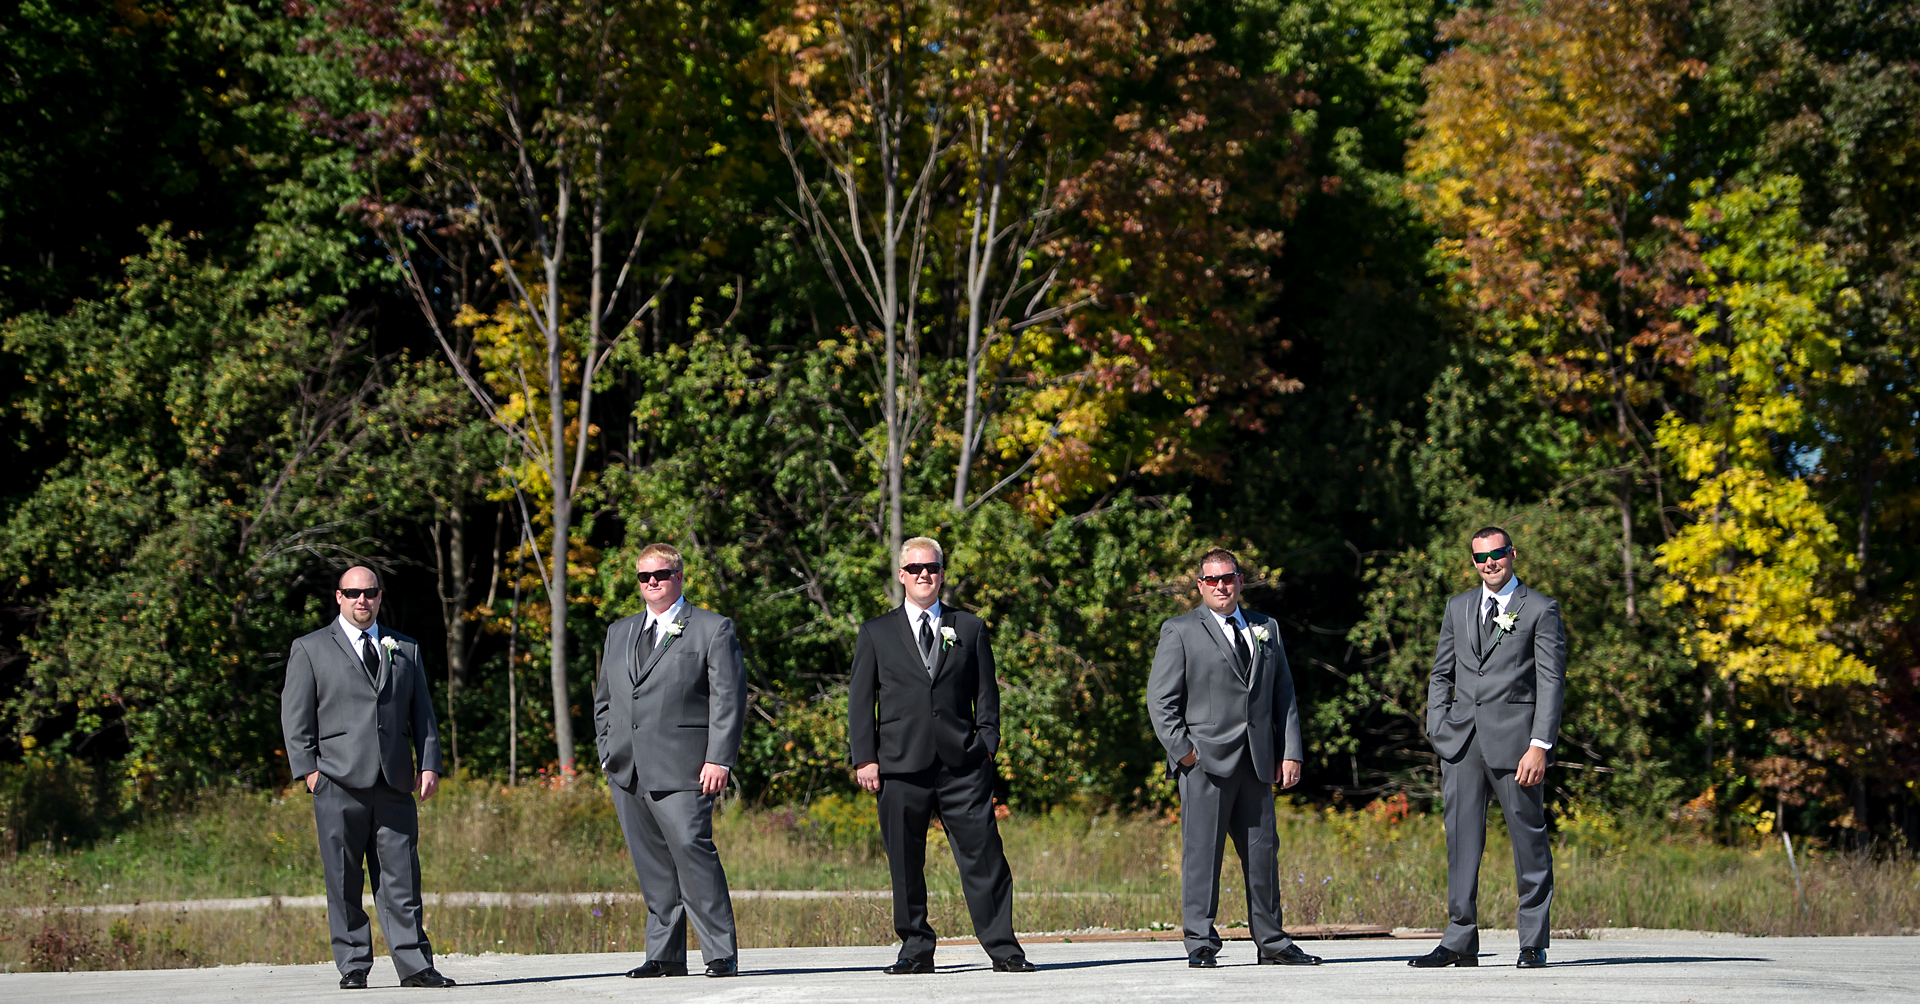 Wes & Mallory | Cobble Beach Wedding | Owen Sound Wedding Photography 04